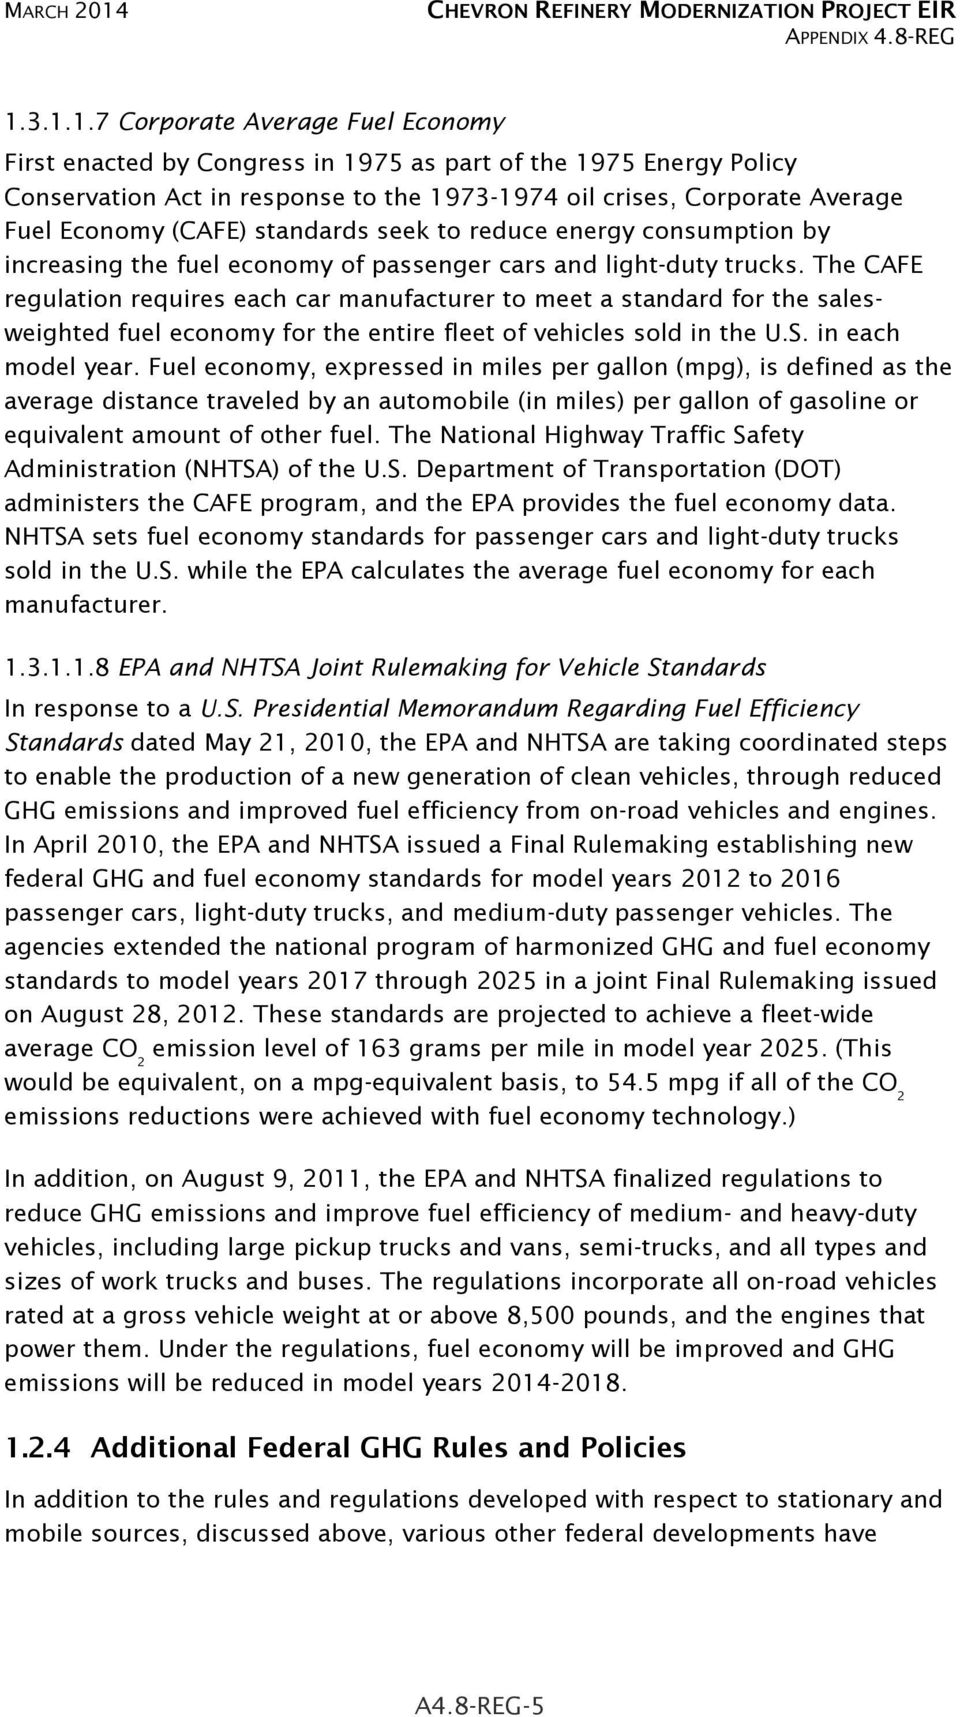 3.1.1.7 Corporate Average Fuel Economy First enacted by Congress in 1975 as part of the 1975 Energy Policy Conservation Act in response to the 1973-1974 oil crises, Corporate Average Fuel Economy